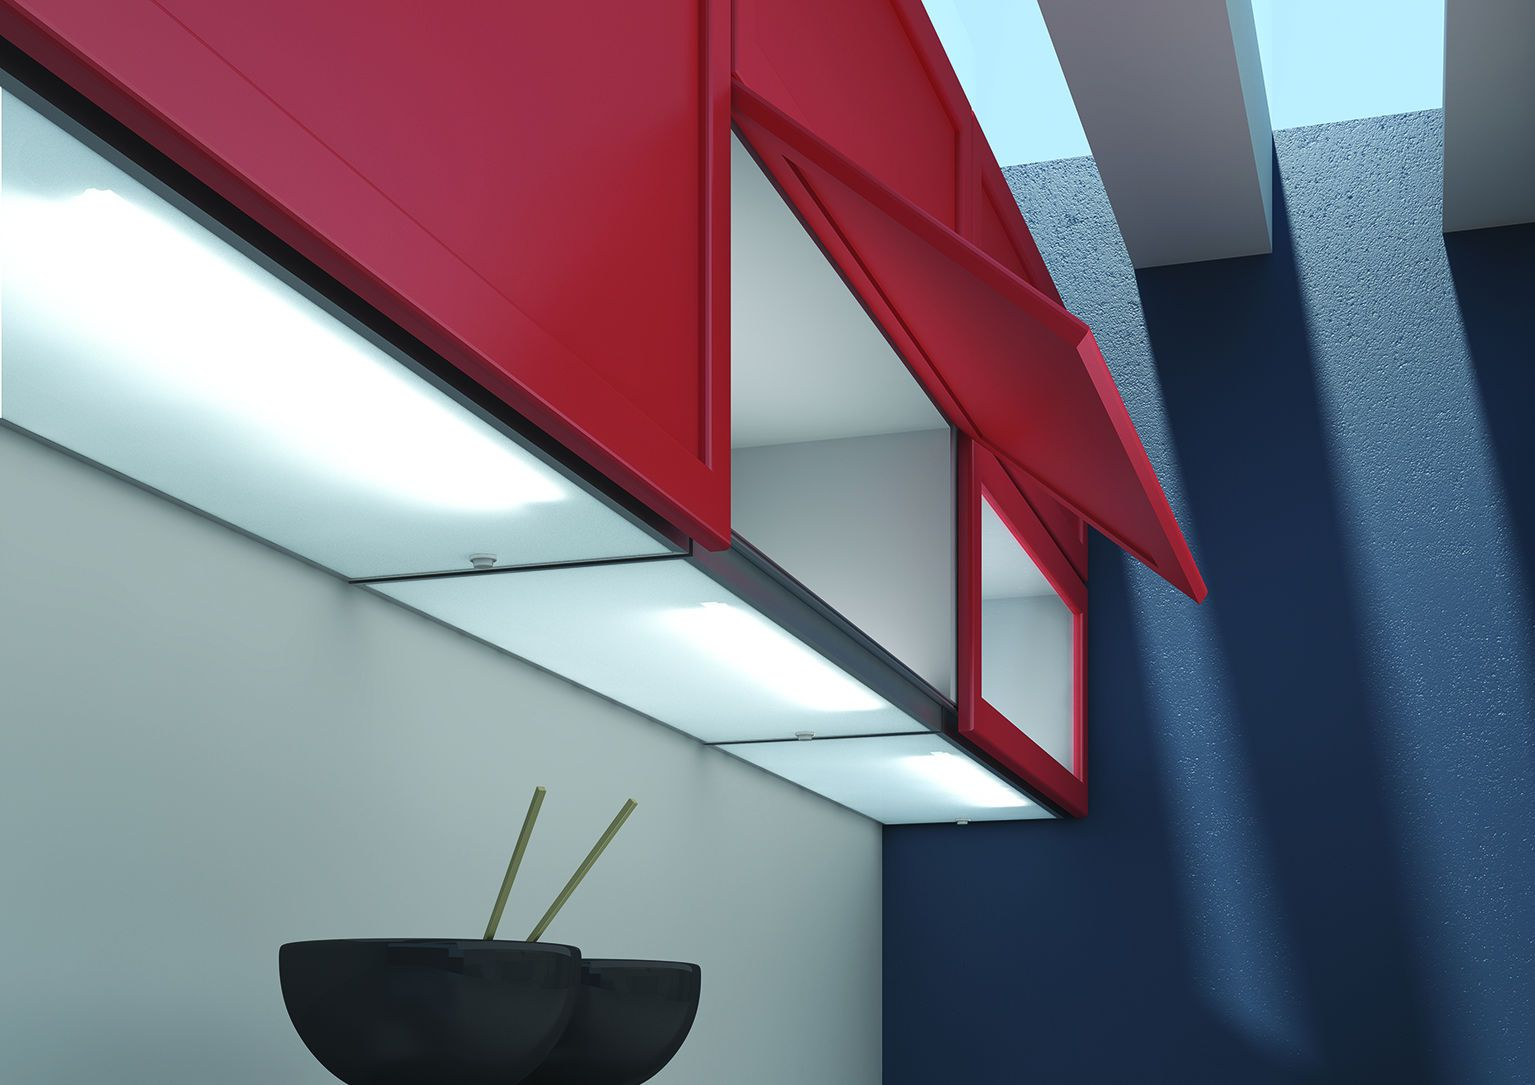 LEDs 10 uses in Architecture   Kitchens, Fluorescent kitchen lights ...